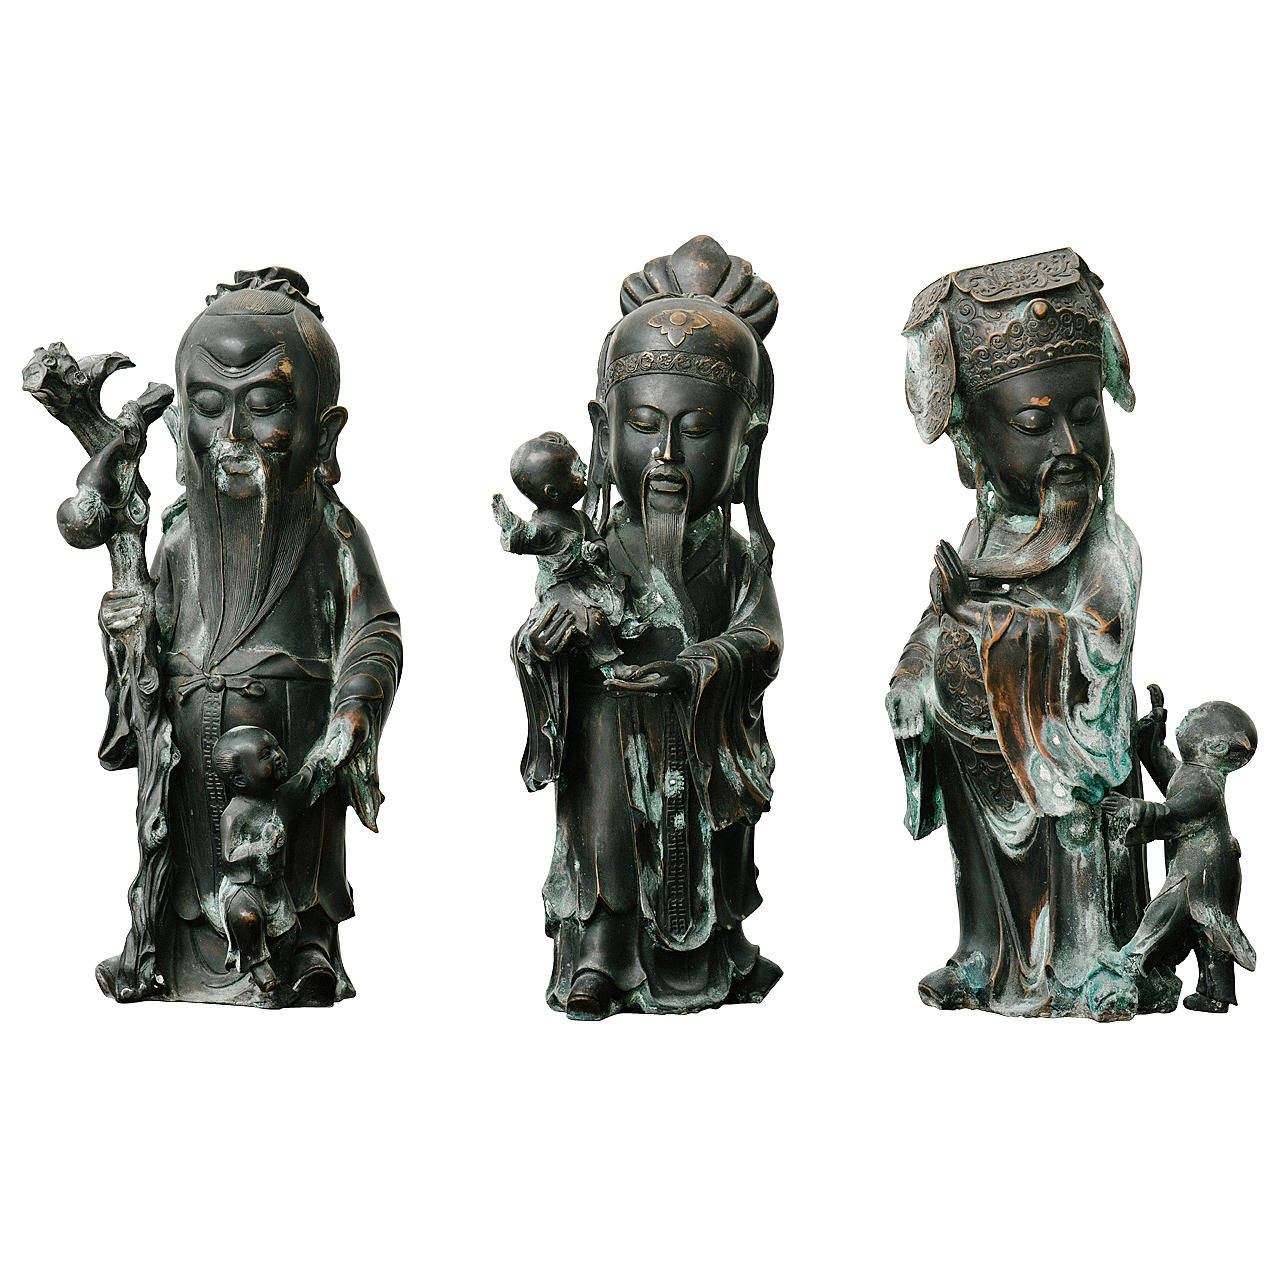 19th Century, Chinese Three Wise Men Bronze Figures, Fu Lou and Shou